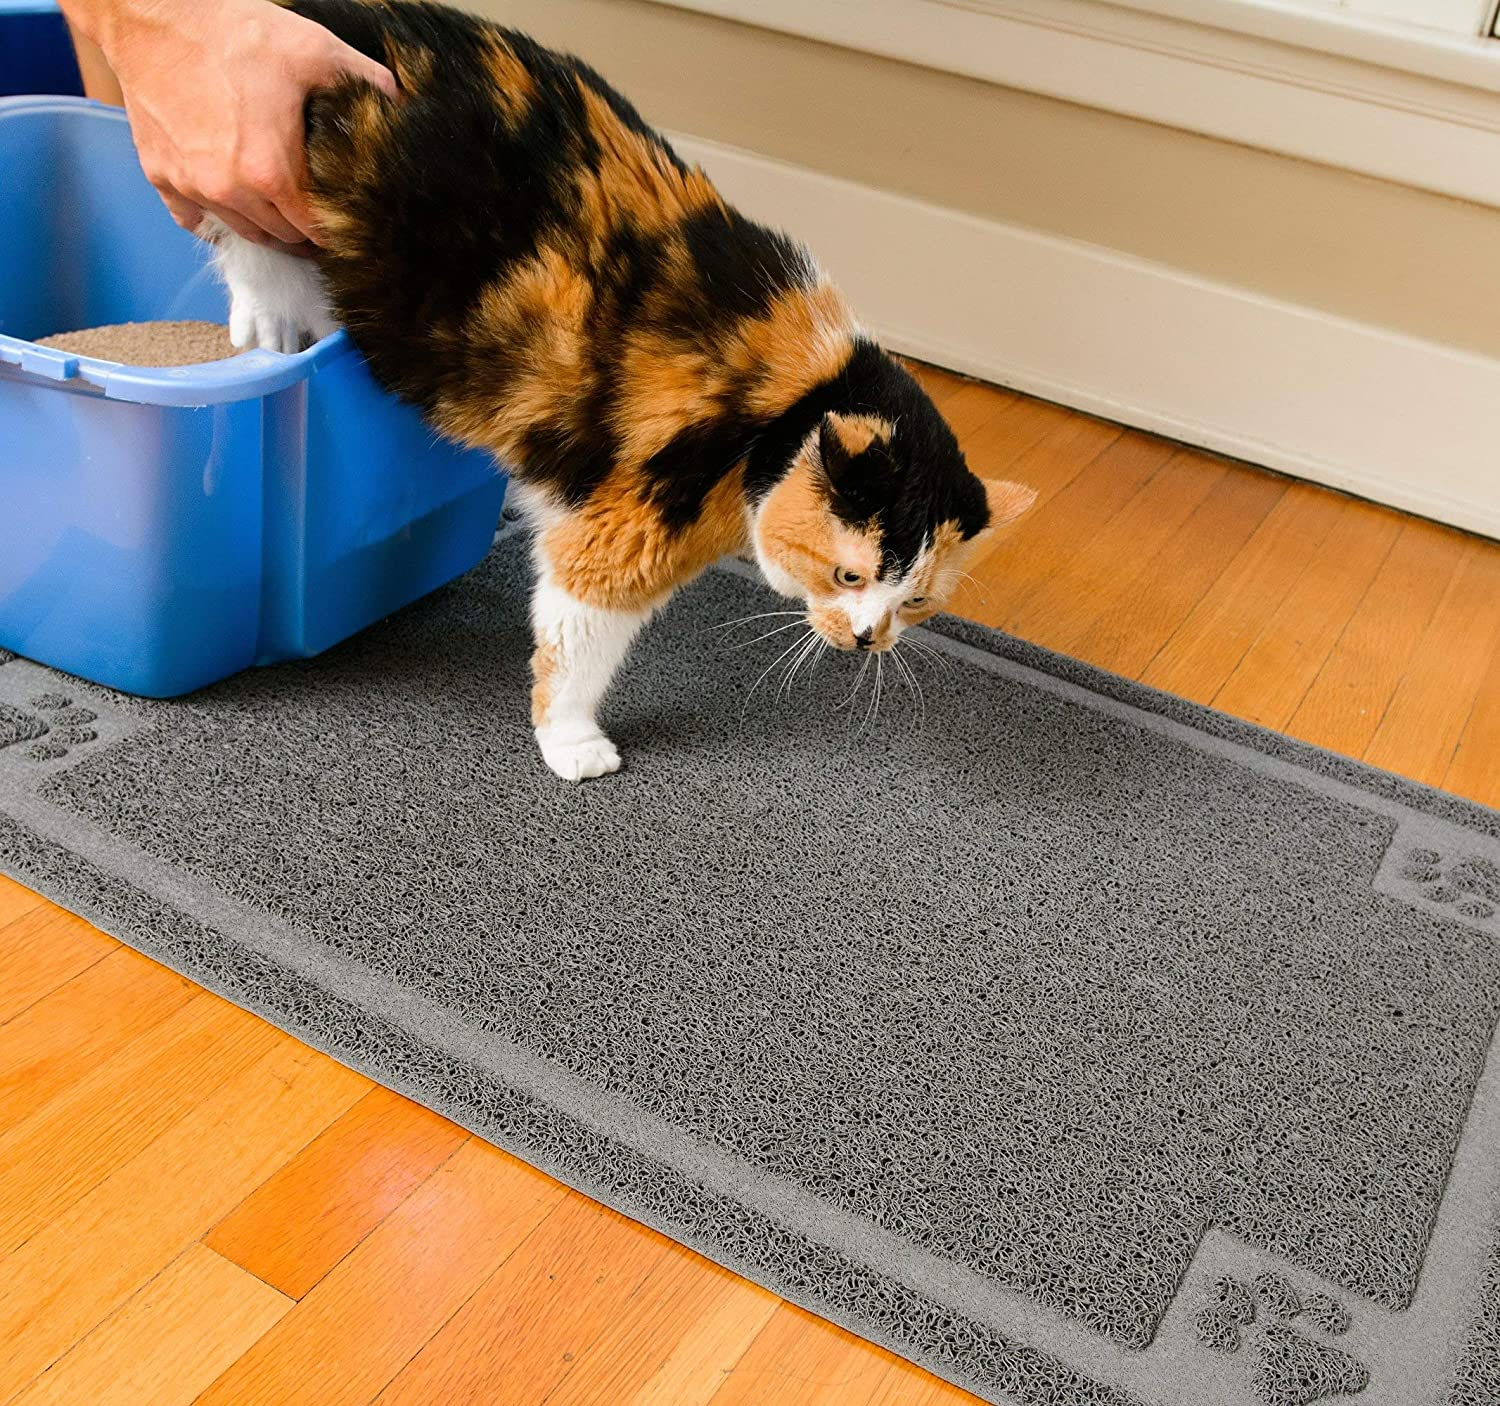 CleanHouse Premium Cat Litter Mat Phthalate Free Extra Large 36x24 Cat Mat Stops All Kitty Litter Tracking and Scatter From Cat Litter Box